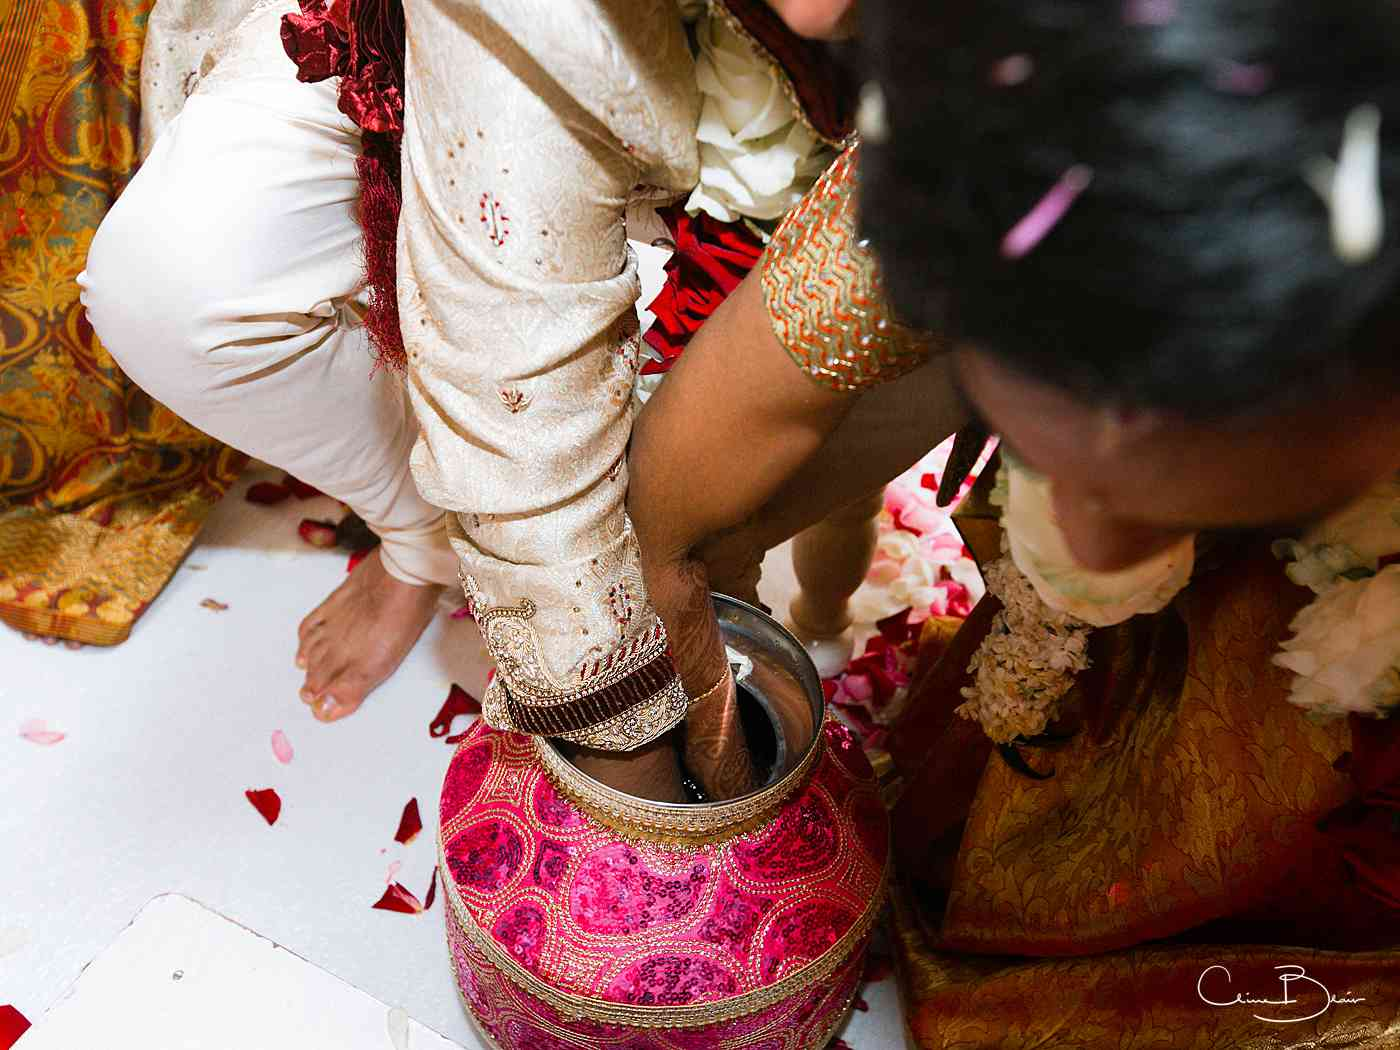 Bride and groom playing games during their Indian wedding ceremony